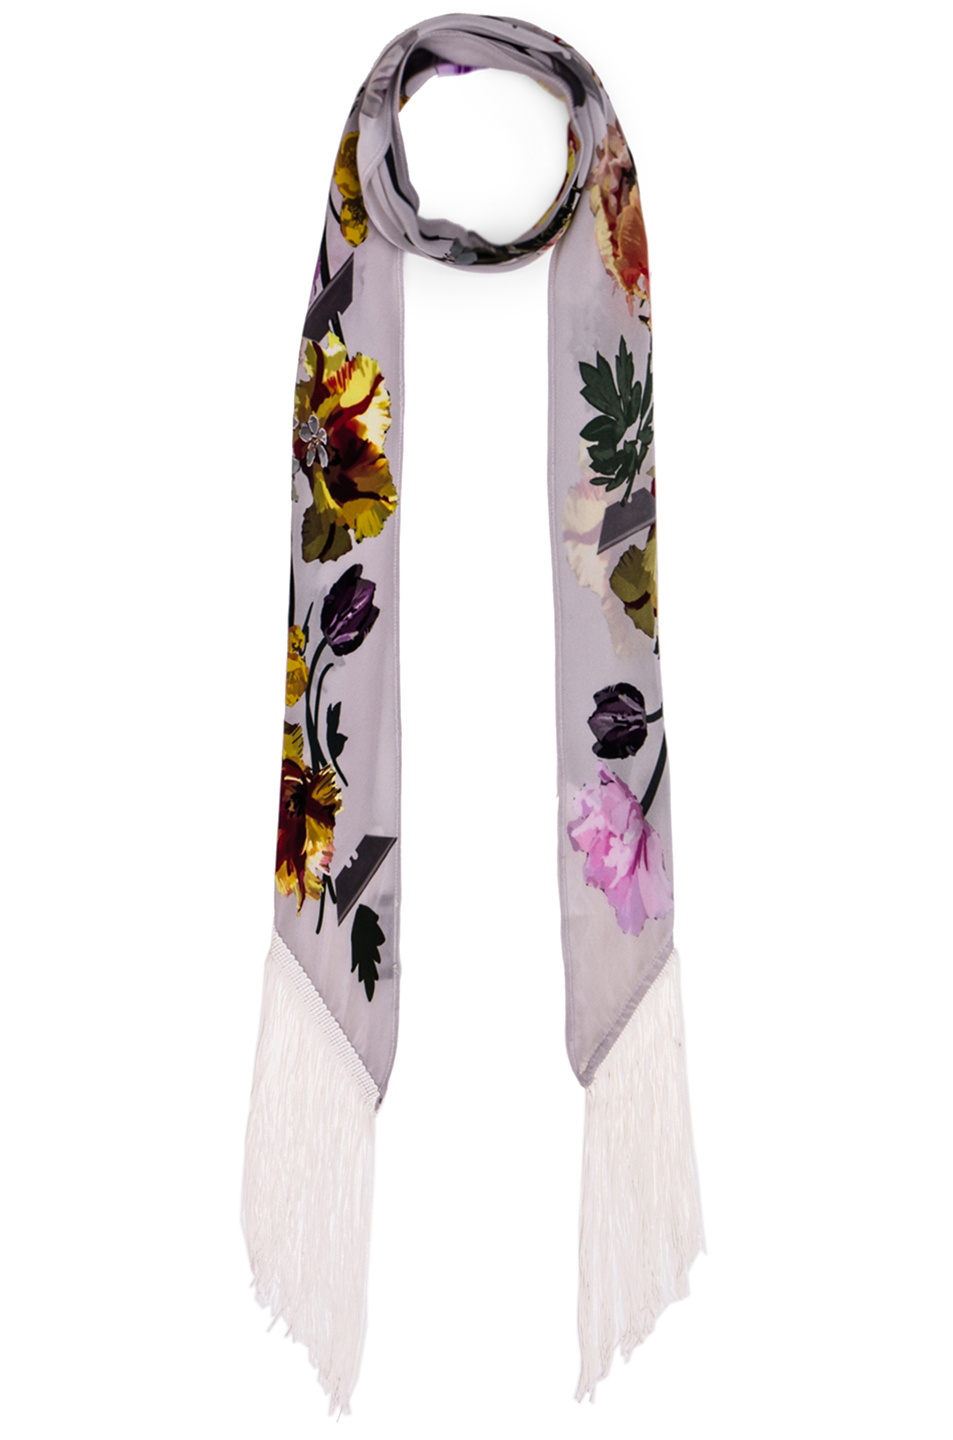 Rockins Flora Classic Skinny Fringe Scarf in White,Floral